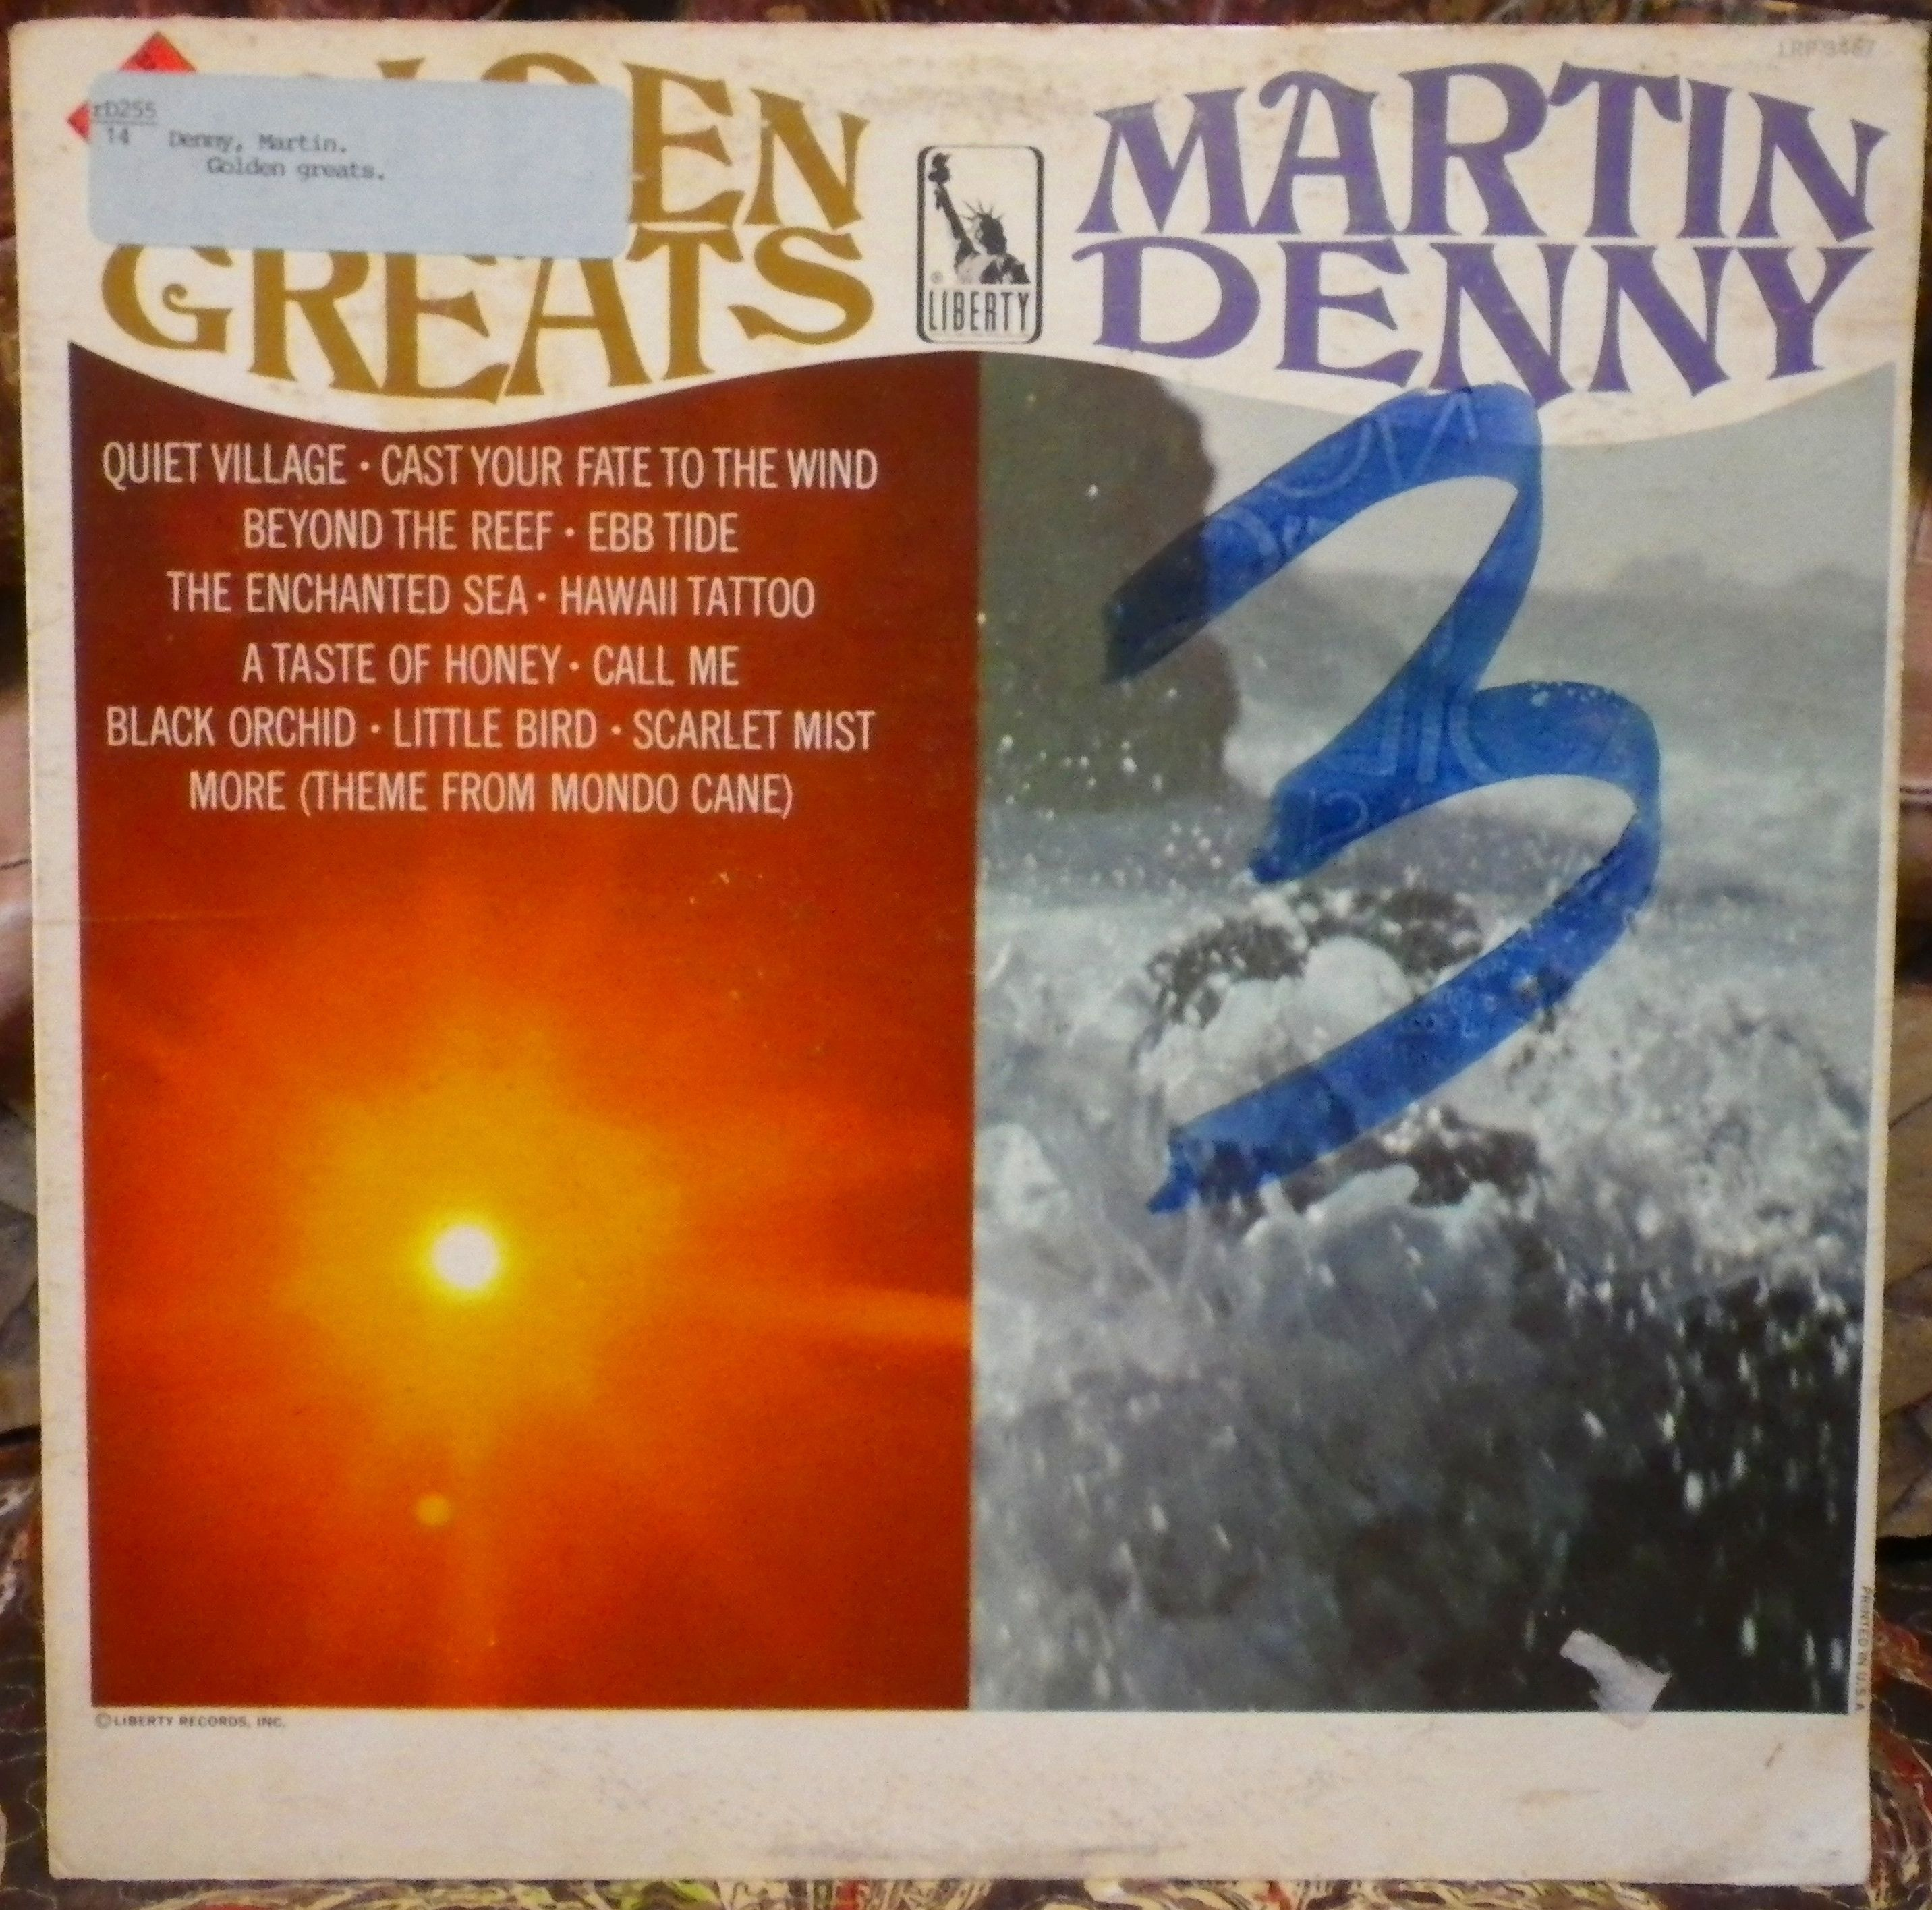 hight resolution of martin denny golden greats los angeles calif liberty records lrp 3467 mono no date exotica record my hawaiian exotica record collection